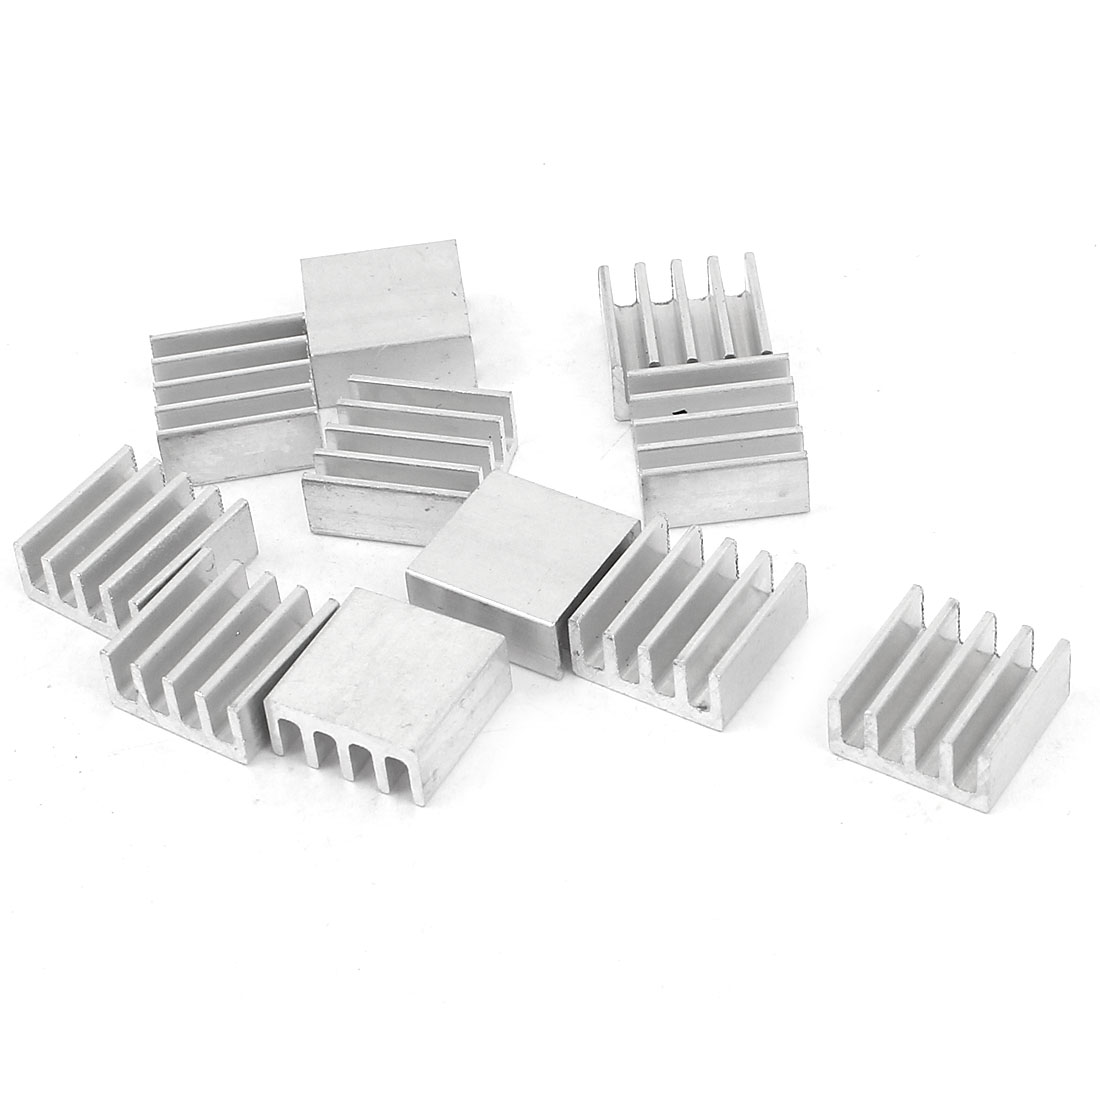 10 Pcs Silver Tone Aluminum Cooler Radiator Heat Sink Heatsink 11mm x 11mm x 5mm